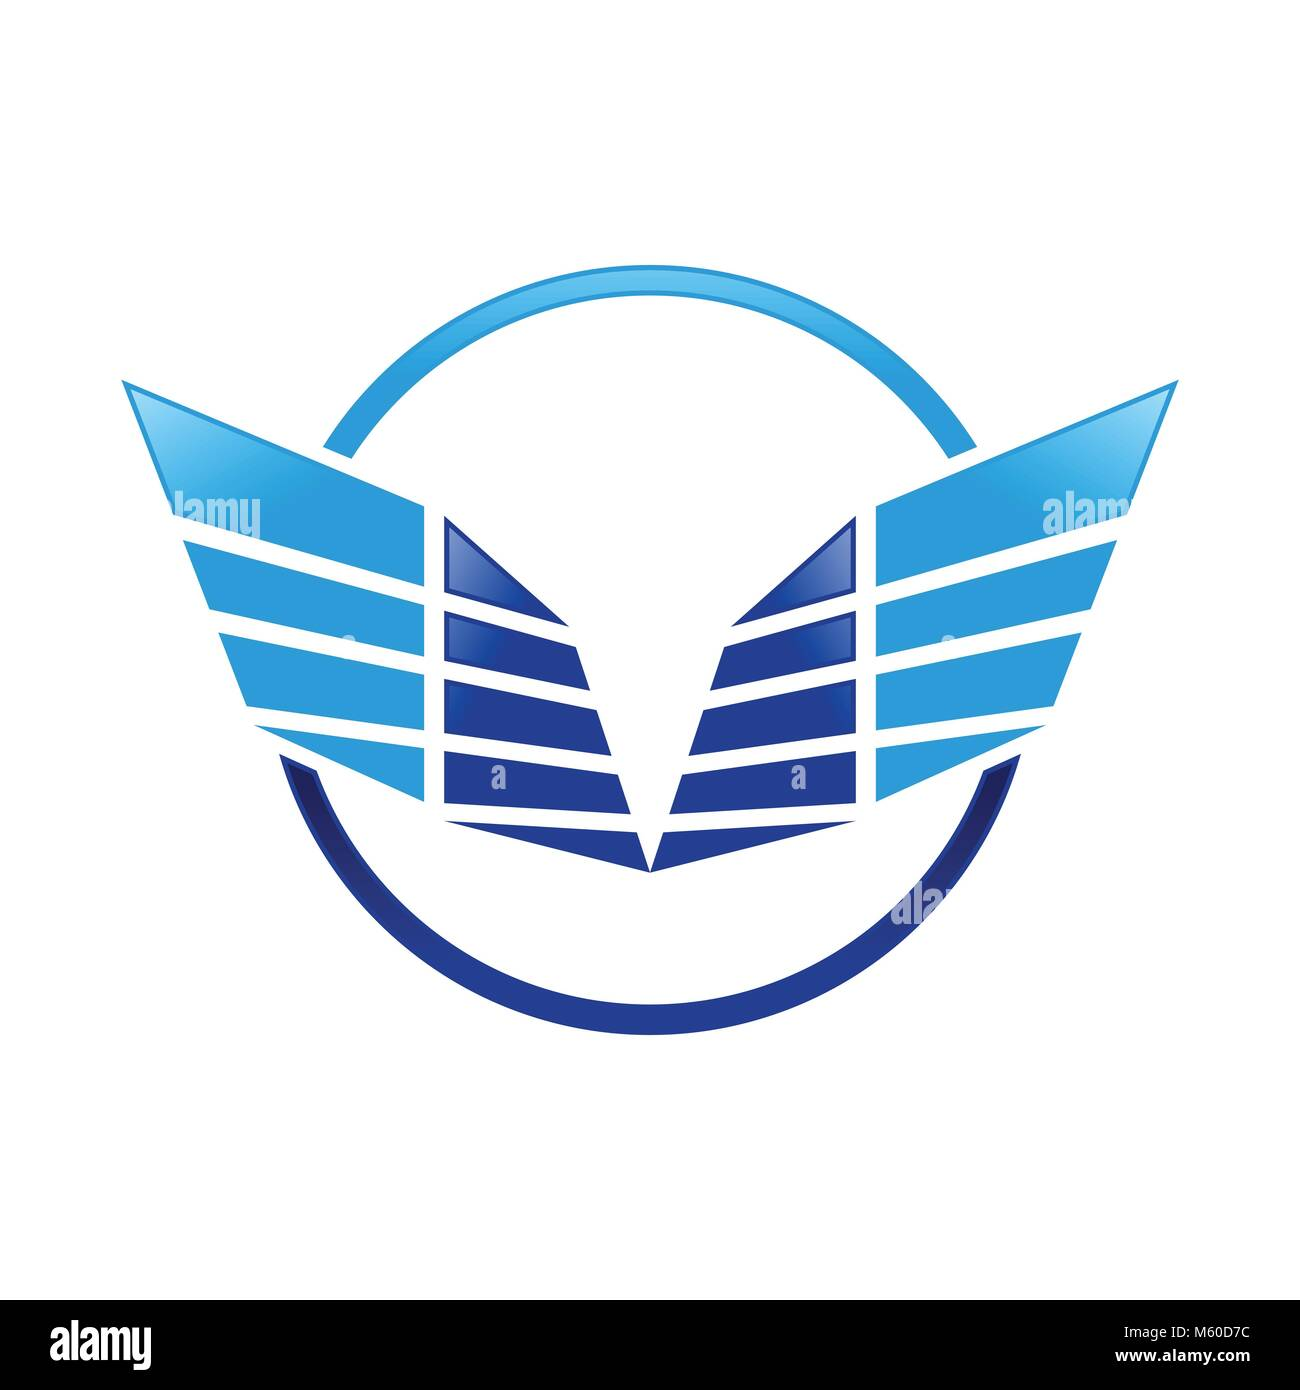 Abstract Sharp Wings Ring Blue Symbol Logo Design - Stock Vector